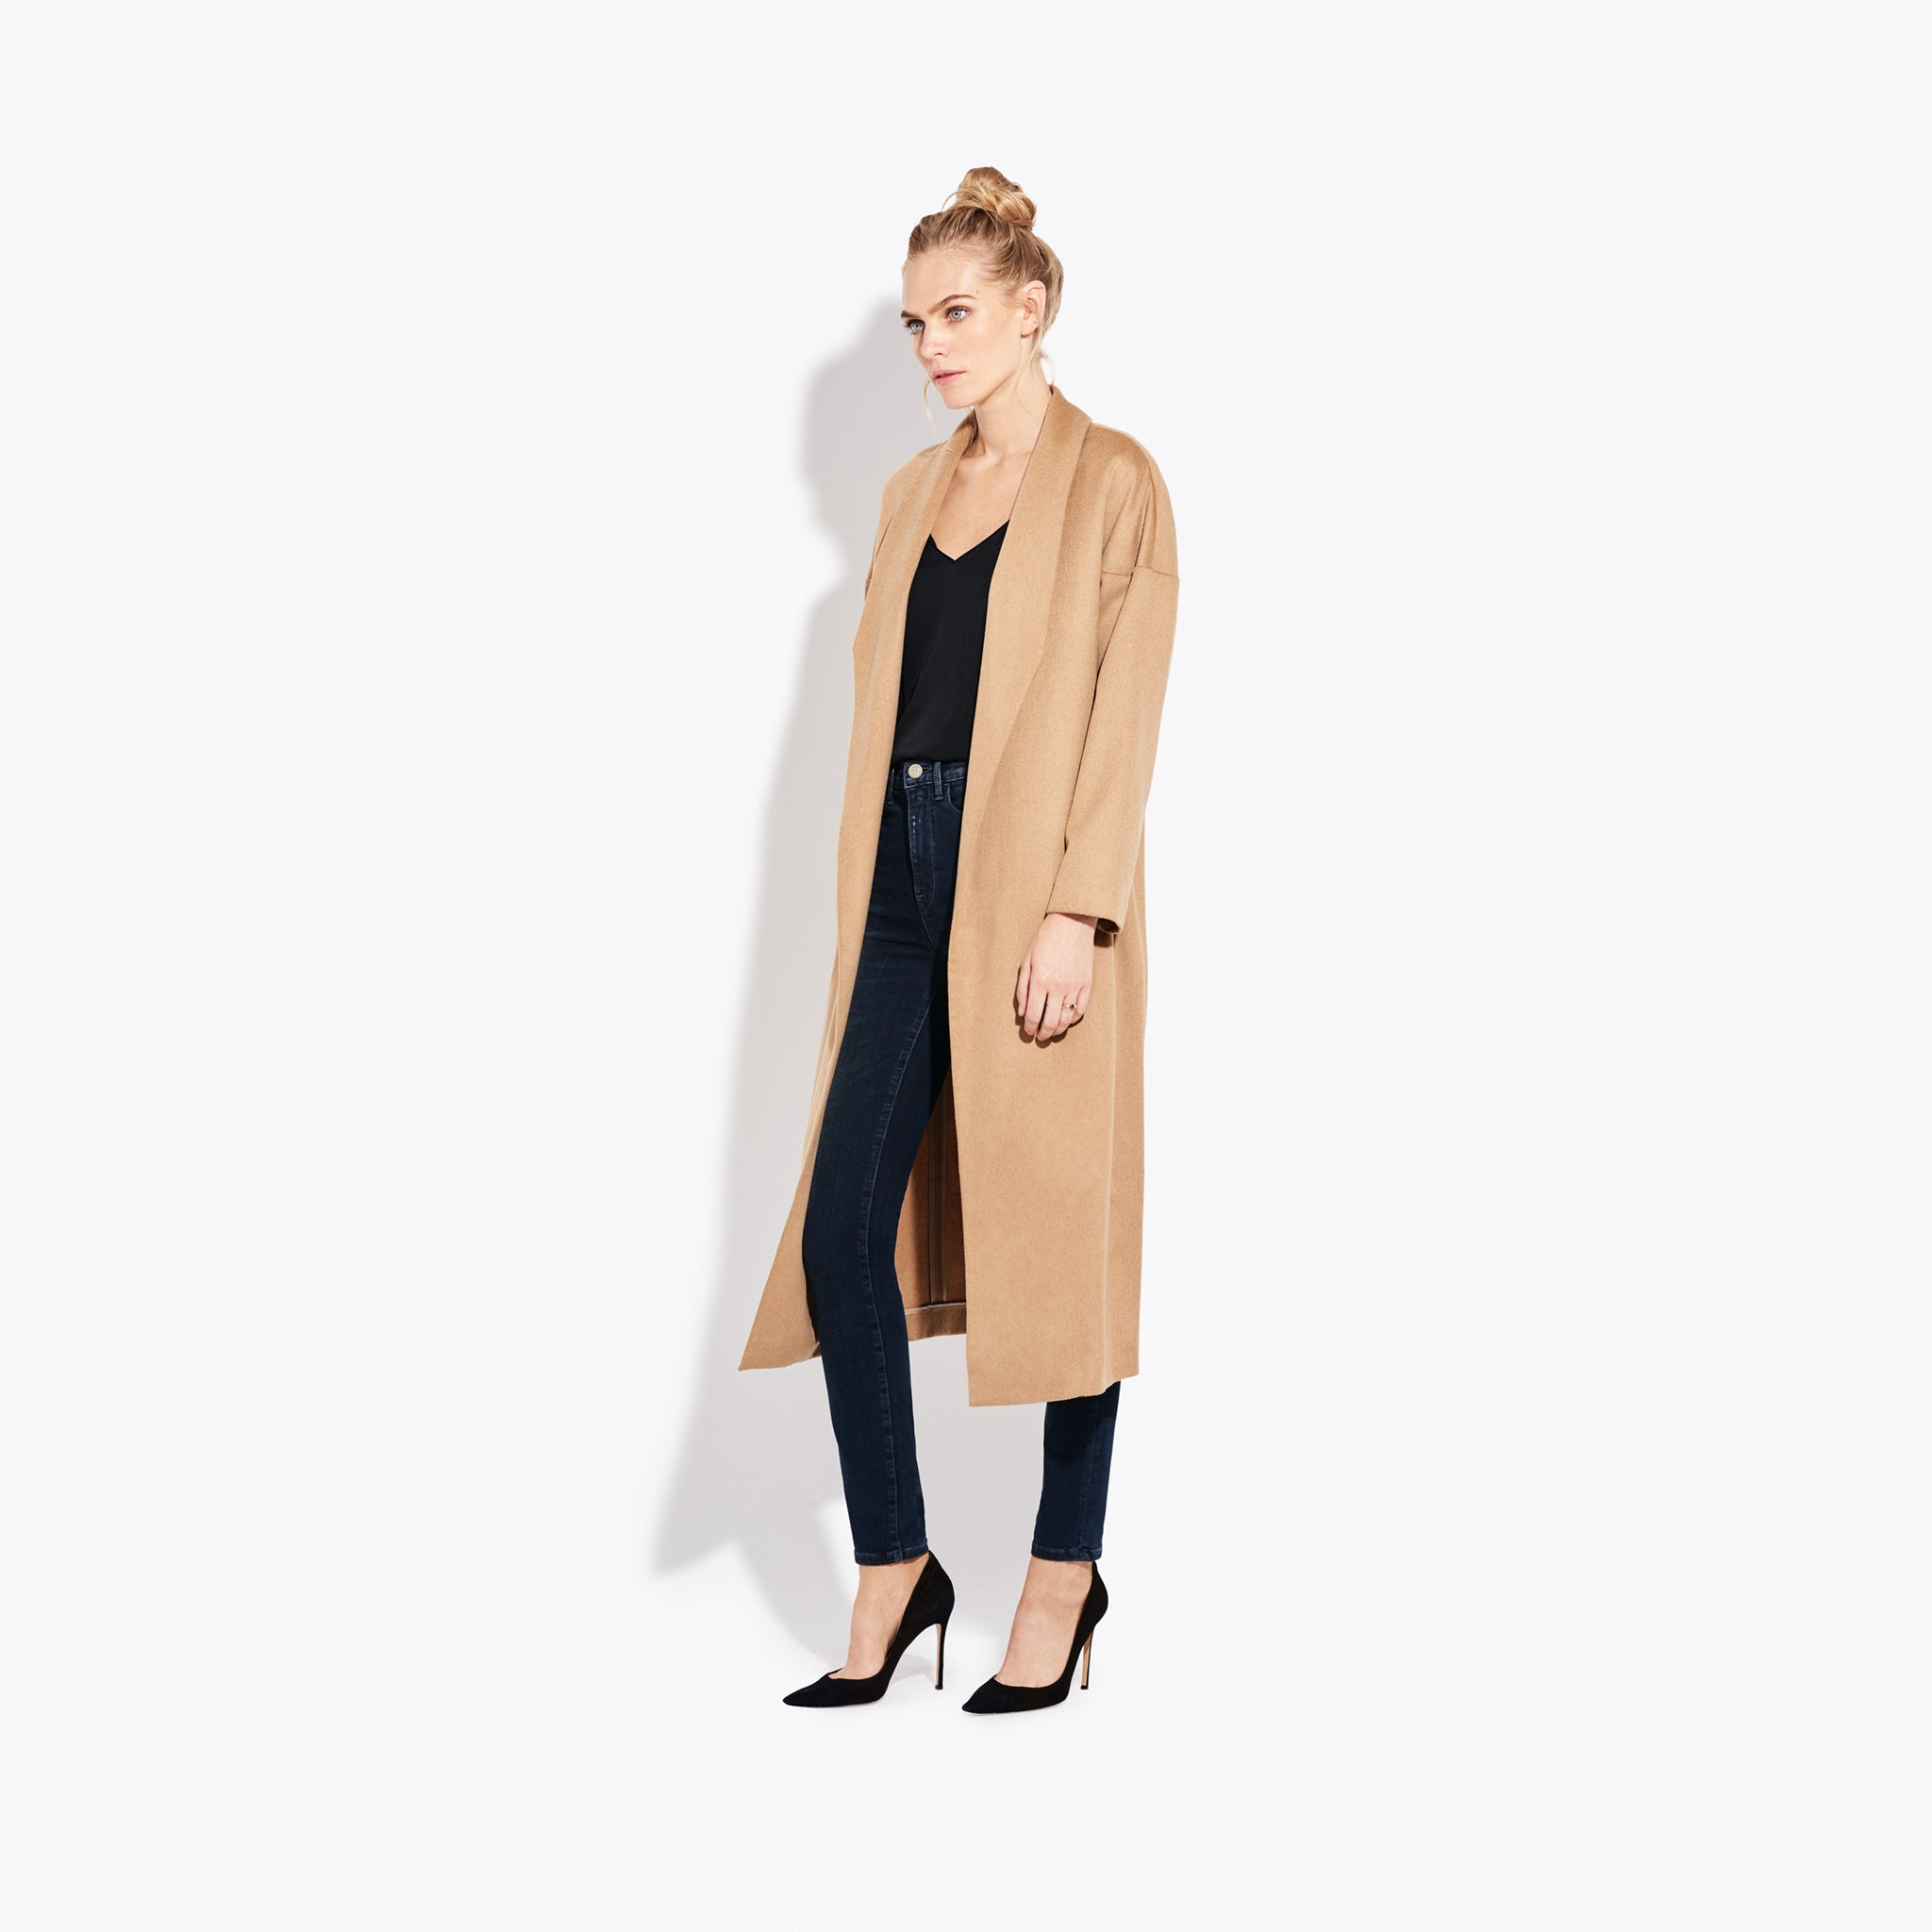 gracelyn c yusbegk drape dakota p drapes coats bb front sku jacket coat